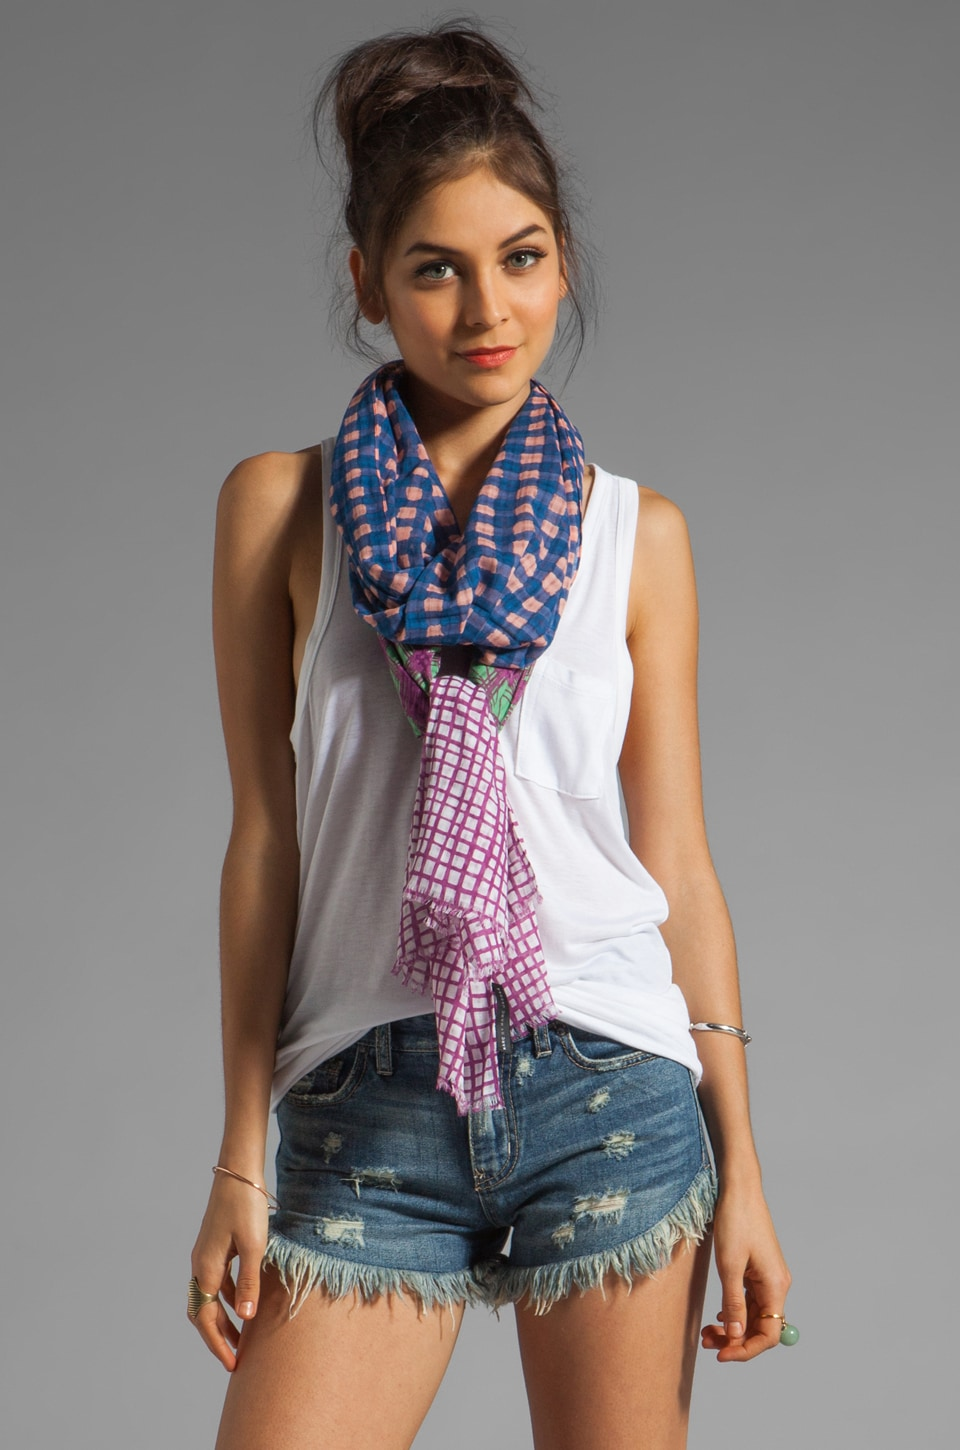 Marc by Marc Jacobs Printed Mix Check Scarf in Apricot Rose Multi